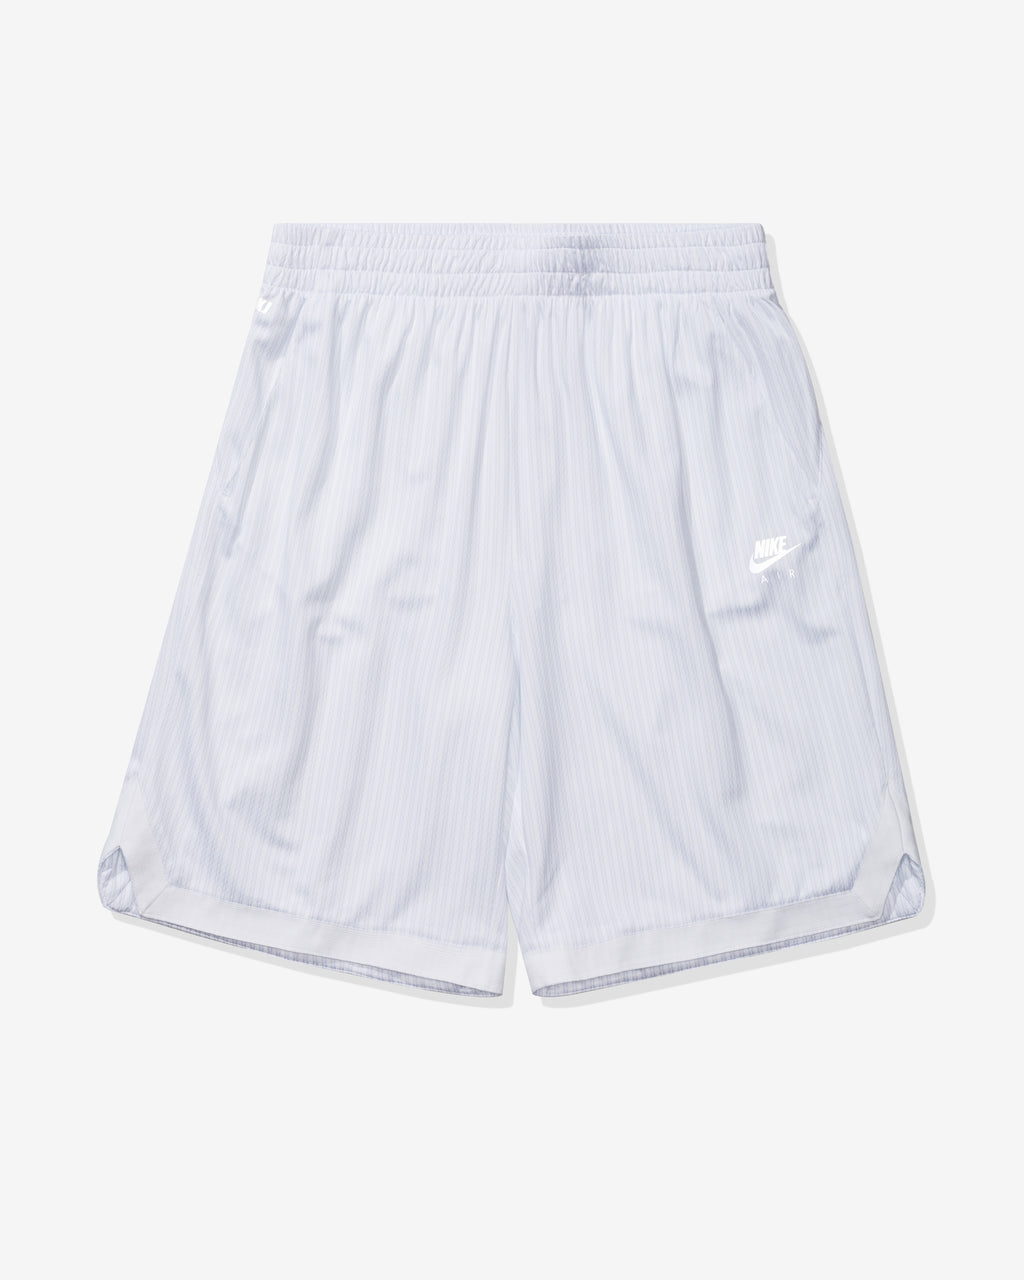 NIKE X KIM JONES NRG AM MESH SHORT AOP - WHITE